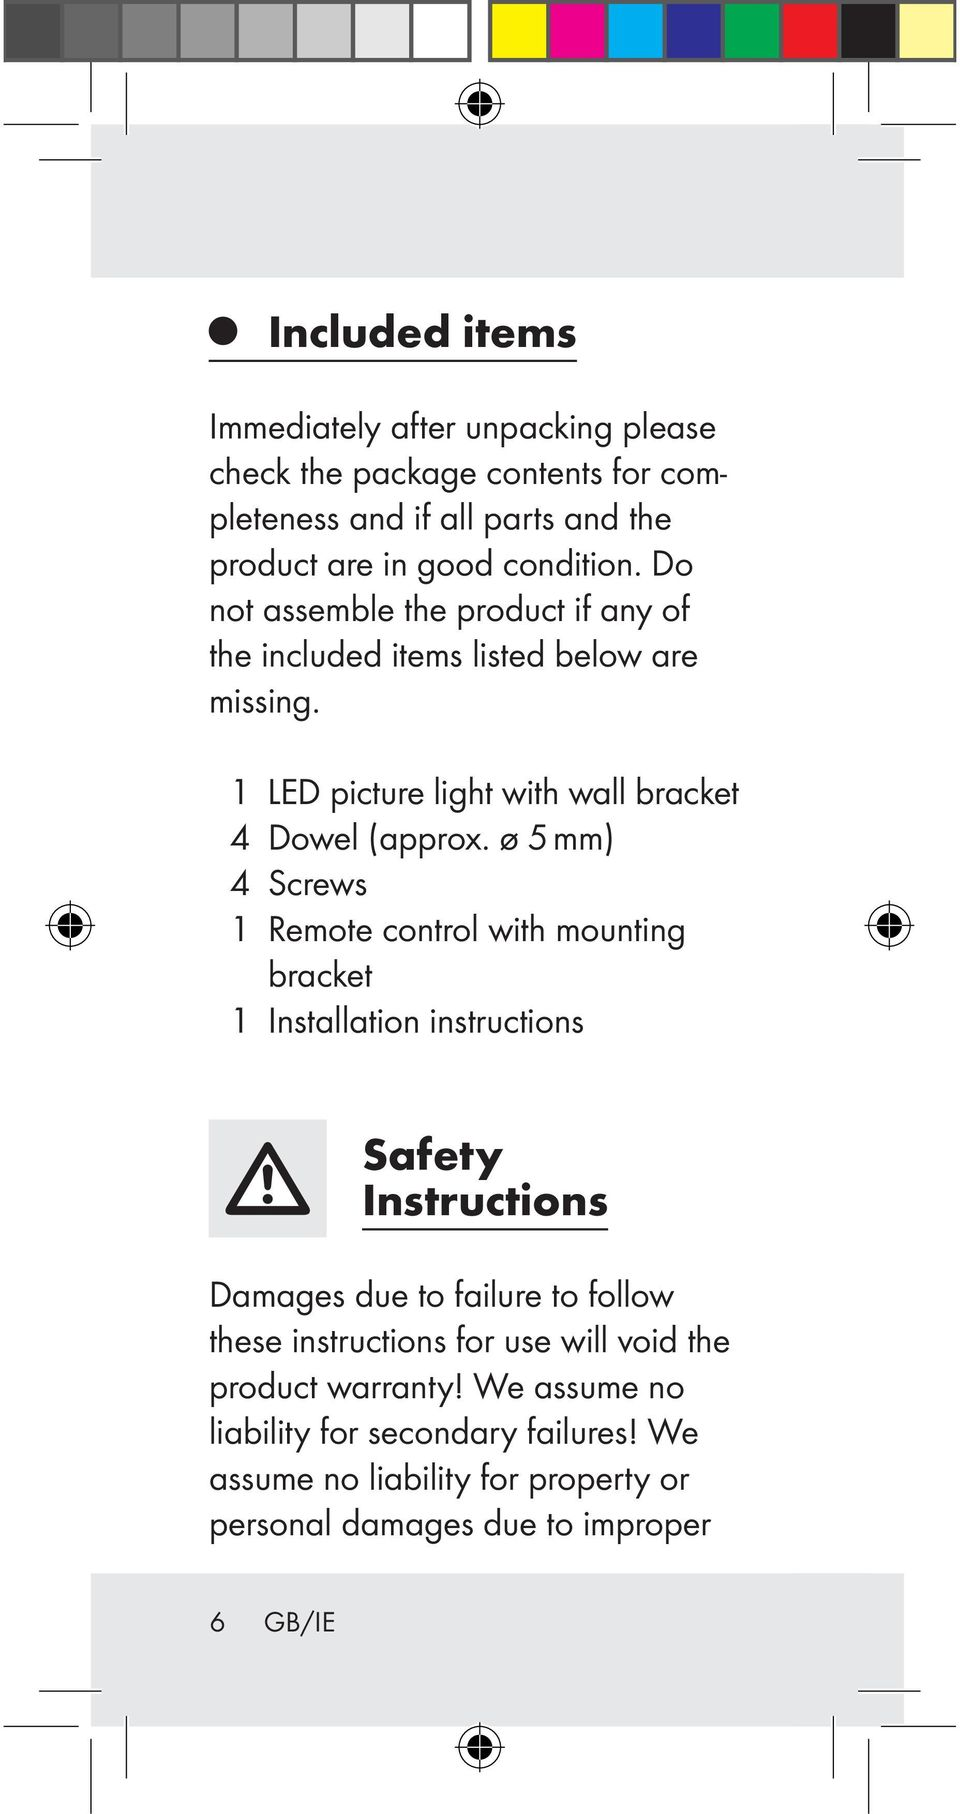 ø 5 mm) 4 Screws 1 Remote control with mounting bracket 1 Installation instructions Safety Instructions Damages due to failure to follow these